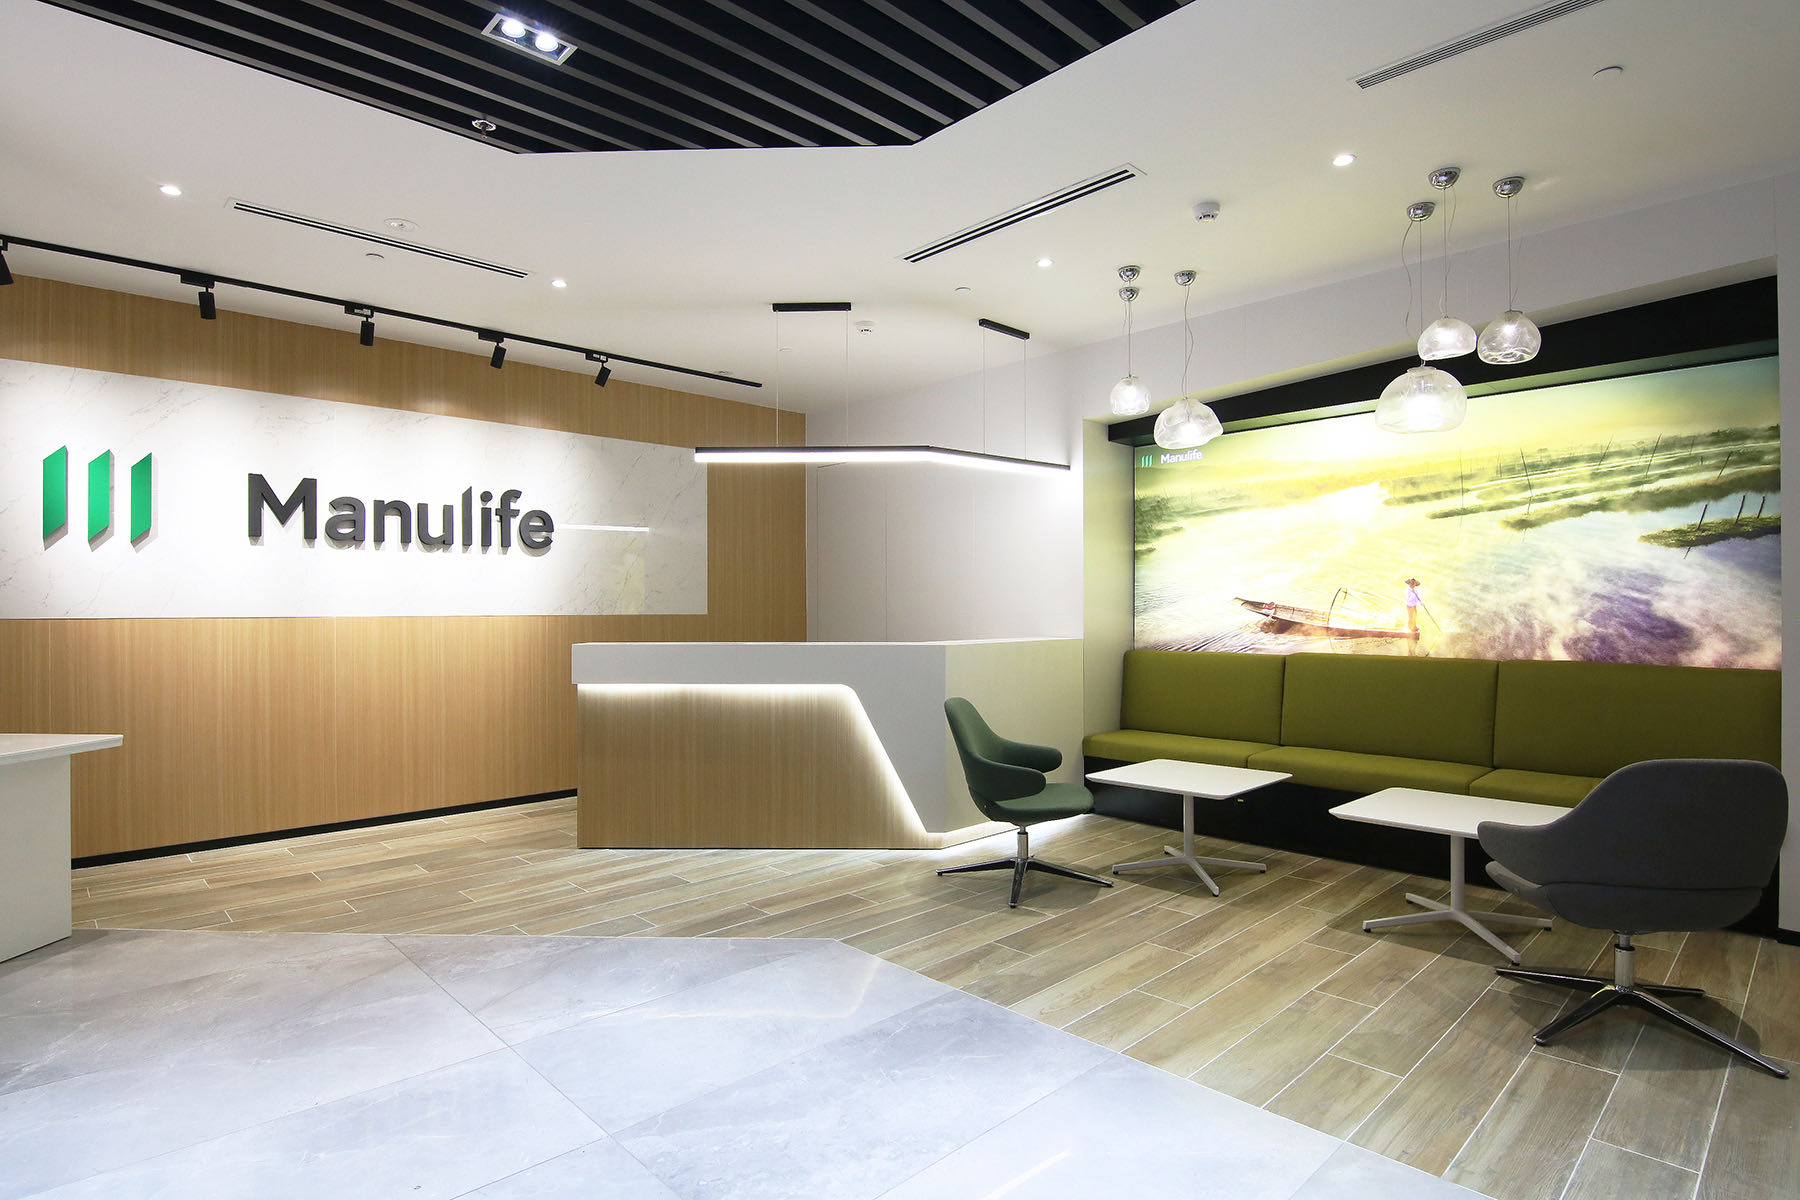 A Look Inside Manulife's New Yangon Office